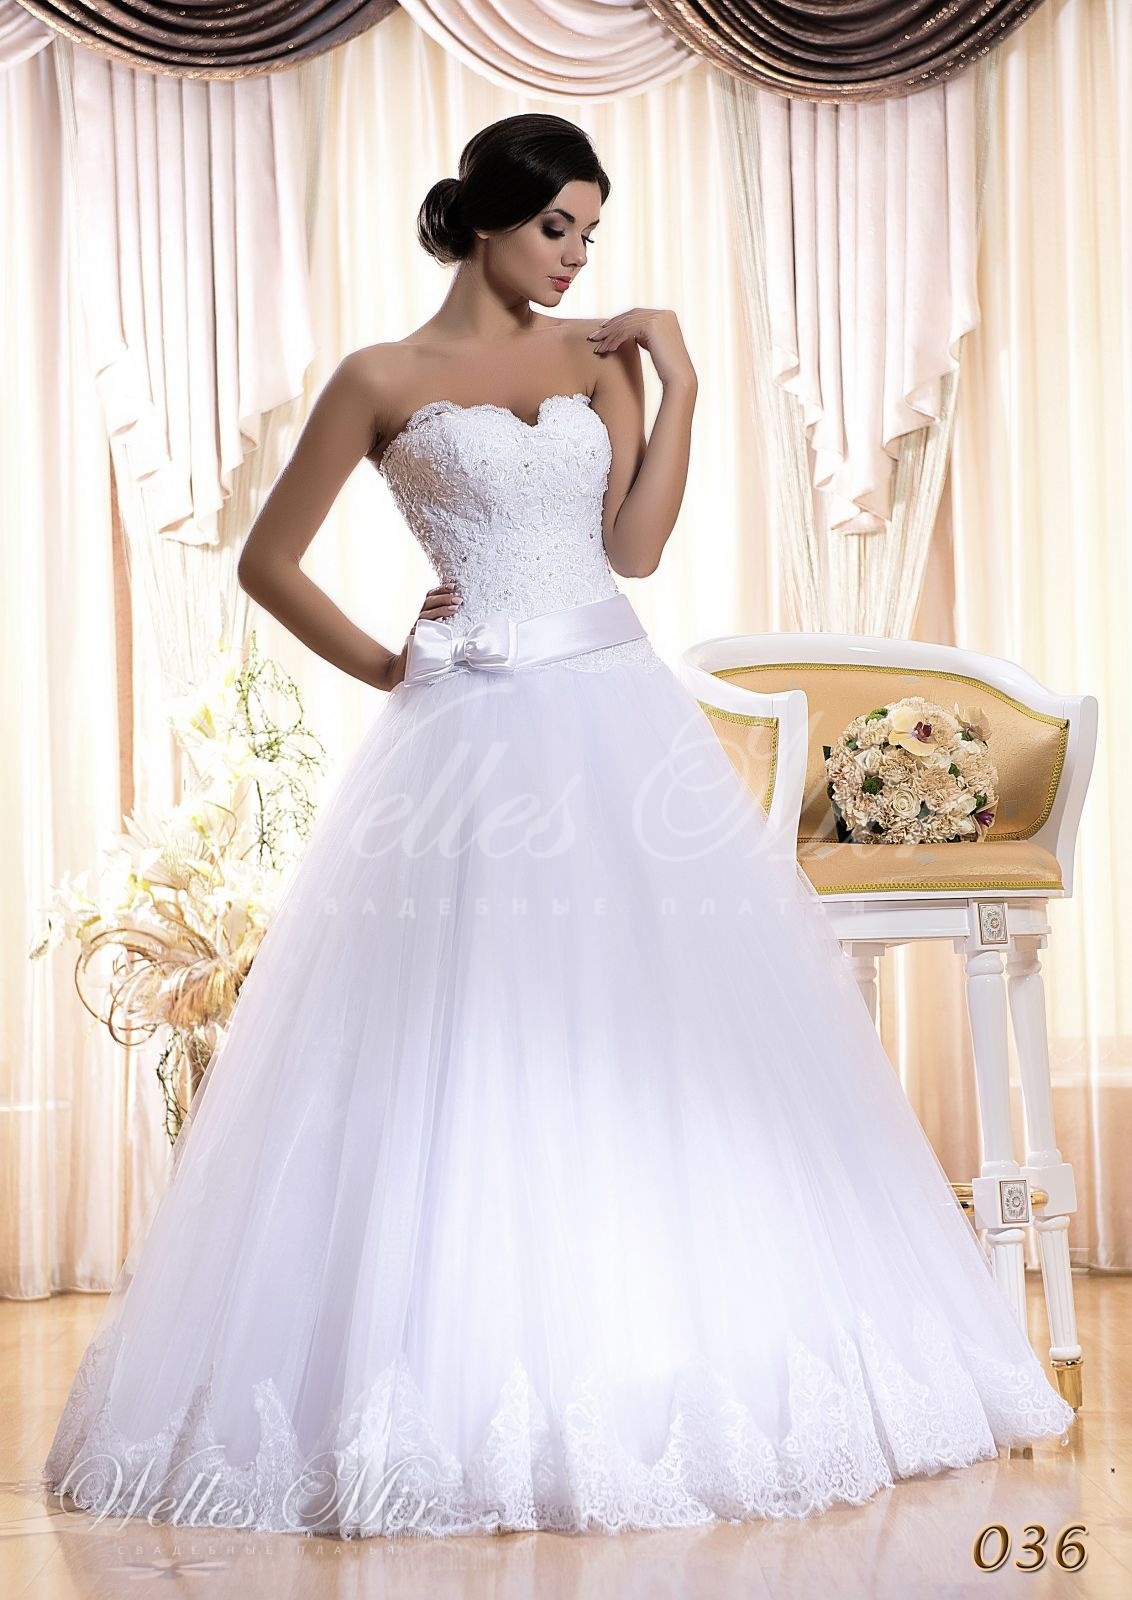 Wedding dresses 036